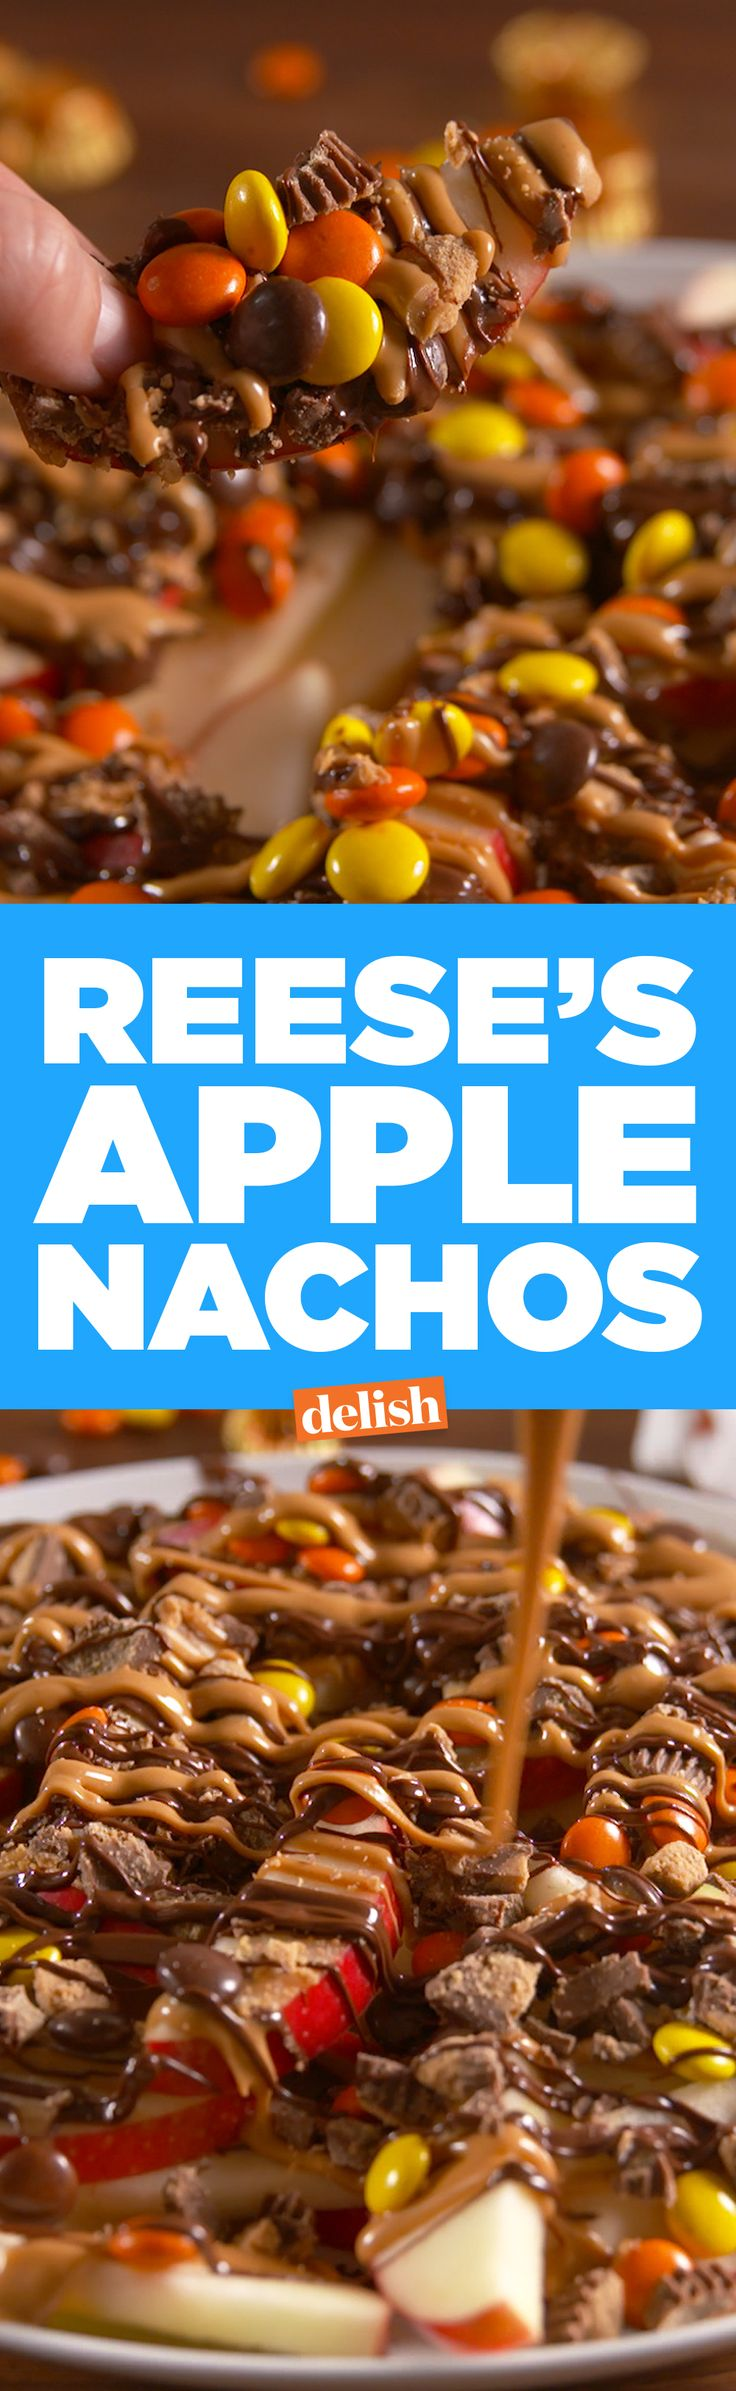 Peanut butter lovers, you need to make these Reese's Apple Nachos. Get the recipe on Delish.com.